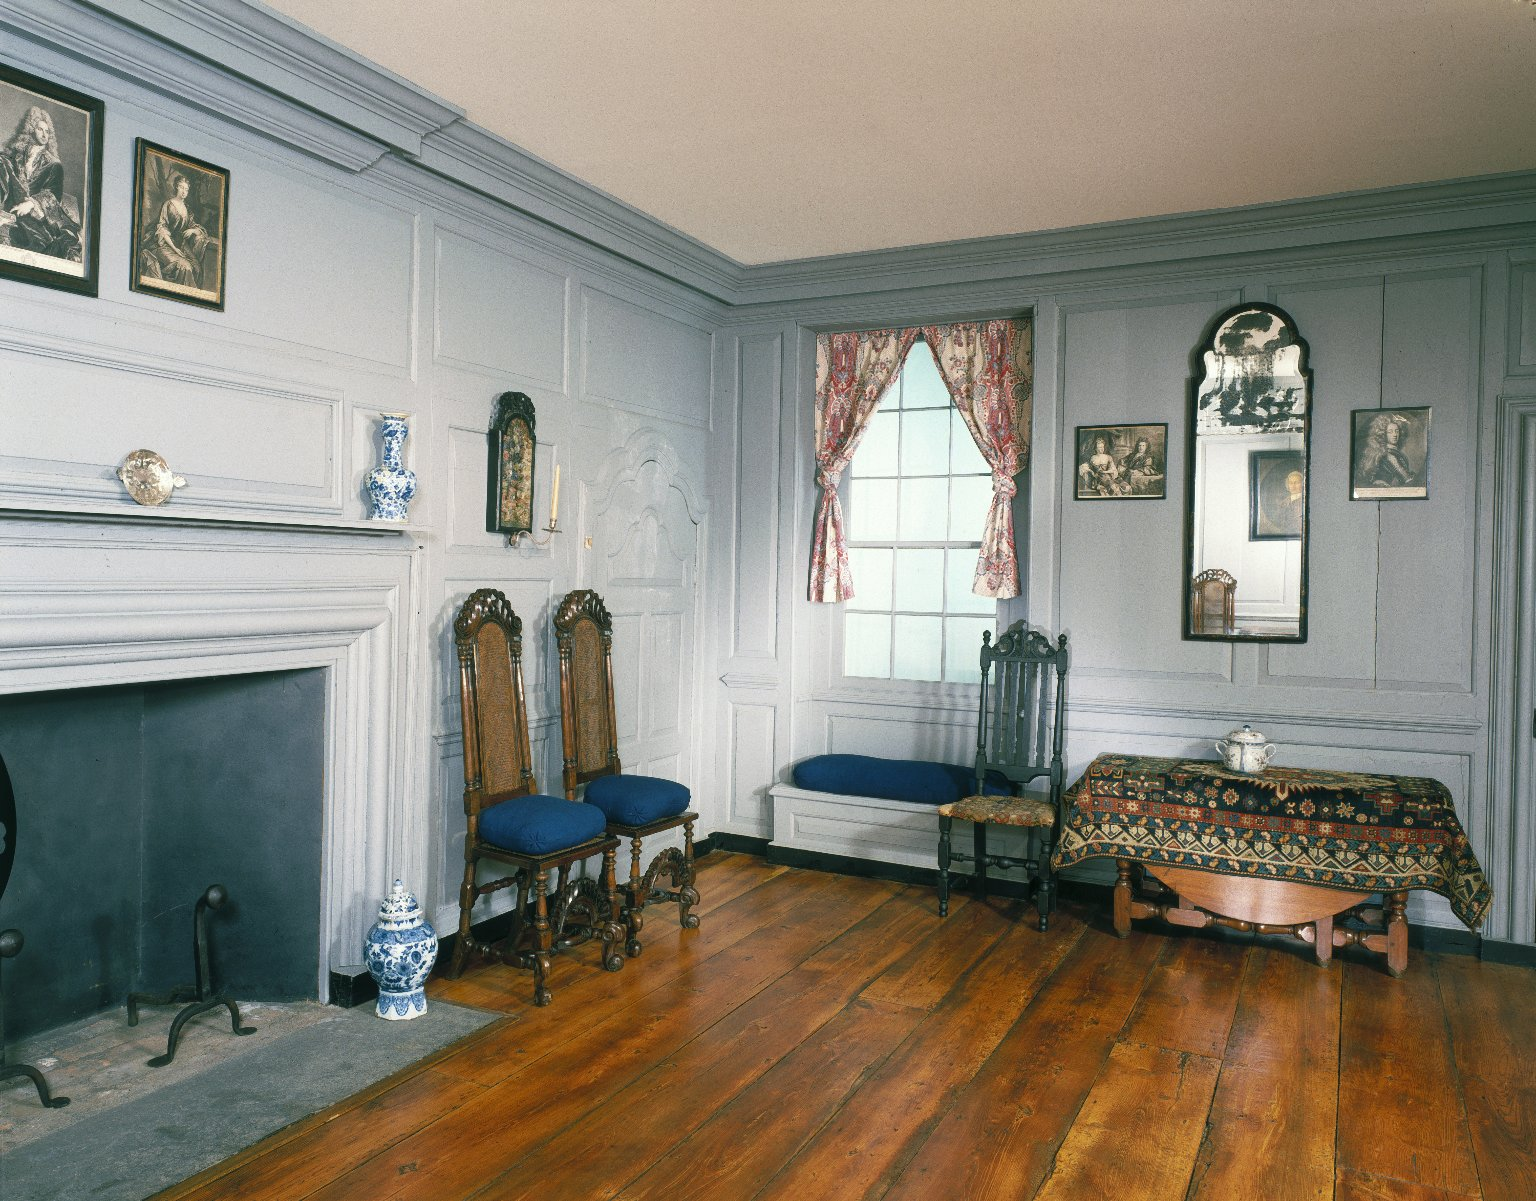 p  em Living Room  The Trippe House  em. Brooklyn Museum